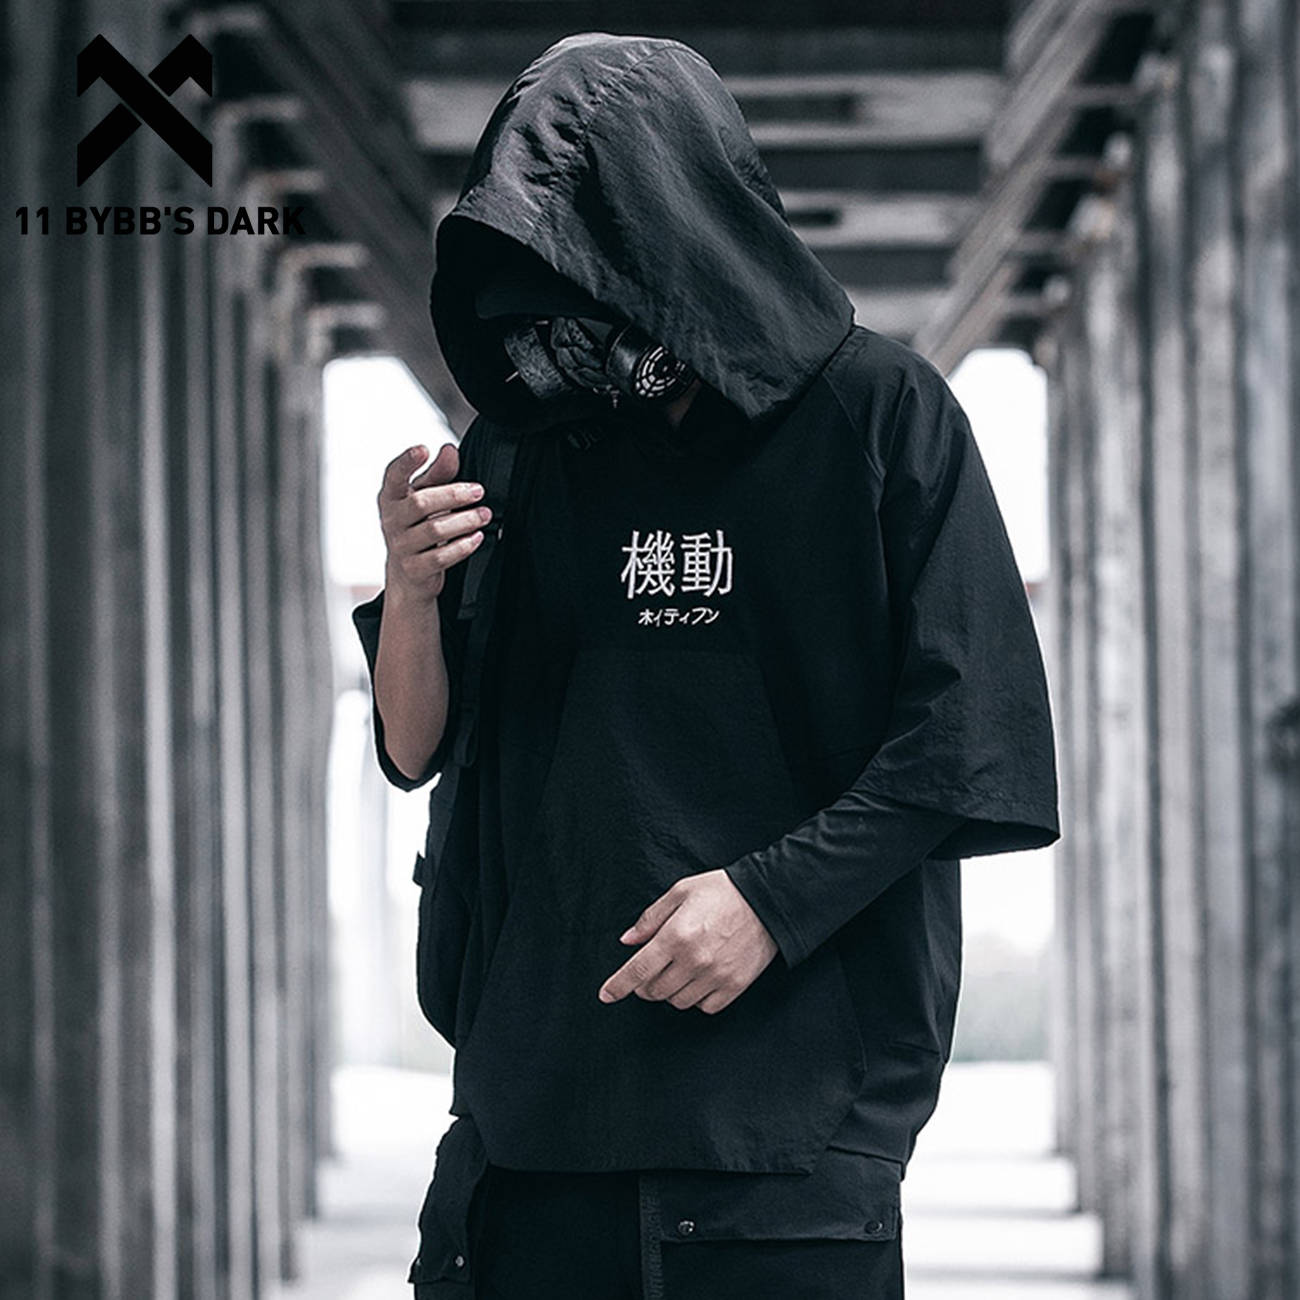 11 BYBB'S DARK Chinese Embroidery Hip Hop Hooded T Shirt Men 2020 Summer Harajuku Streetwear Short Sleeves High Street T Shirts